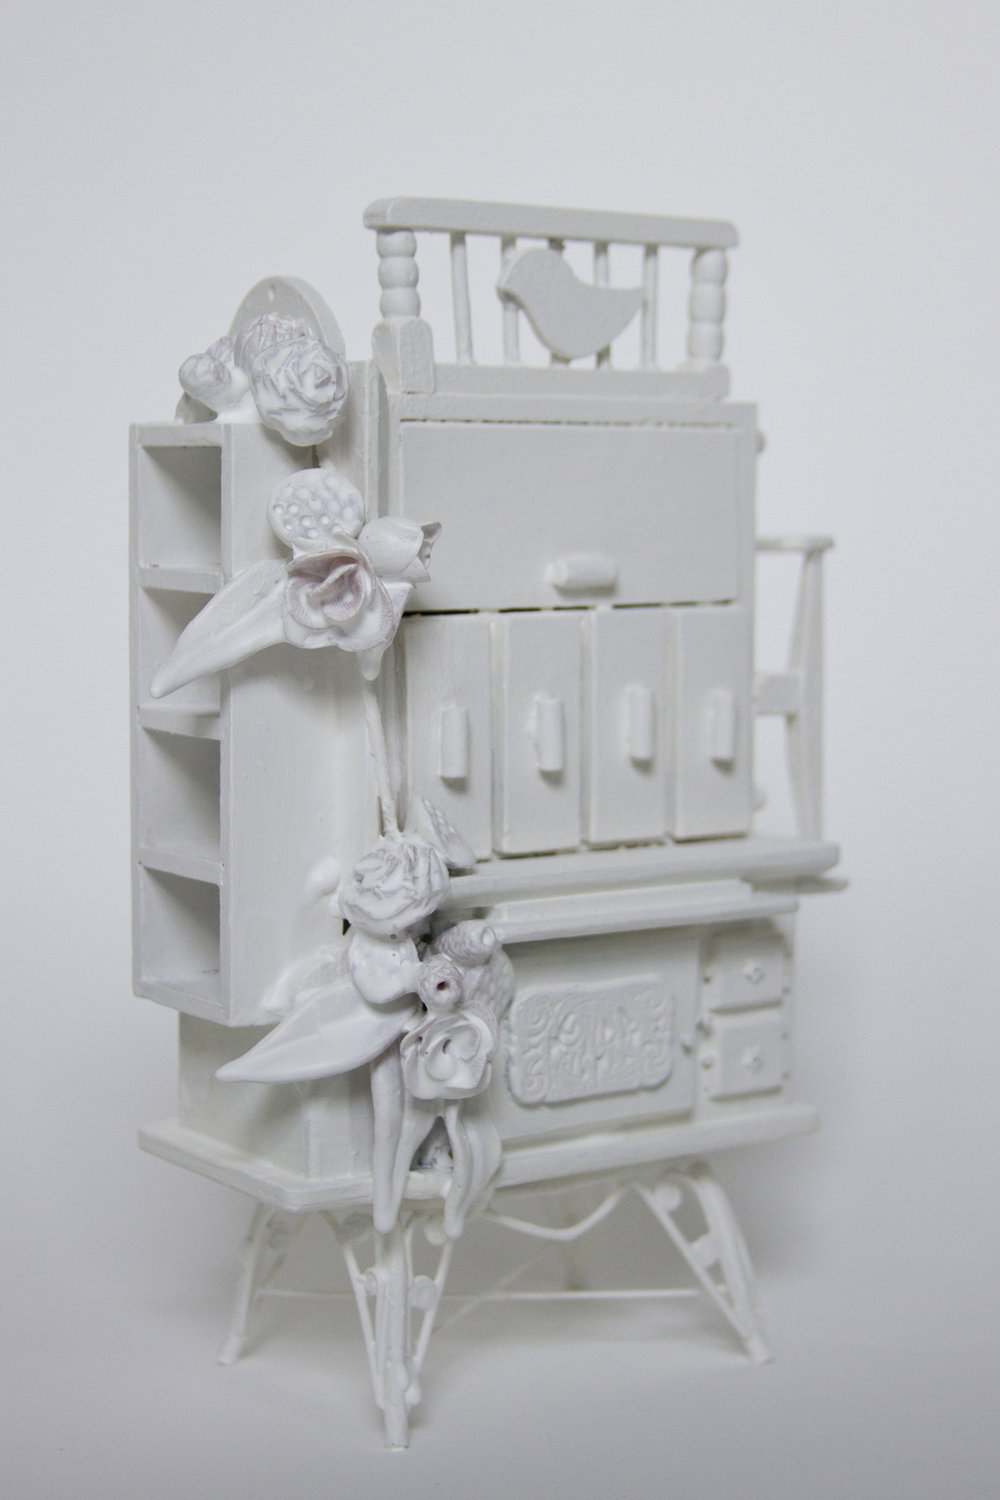 Chelsea Revelle,  Den of Antiquity: Fragility of Silence Series,  Dollhouse assemblage, 8x5x2.5